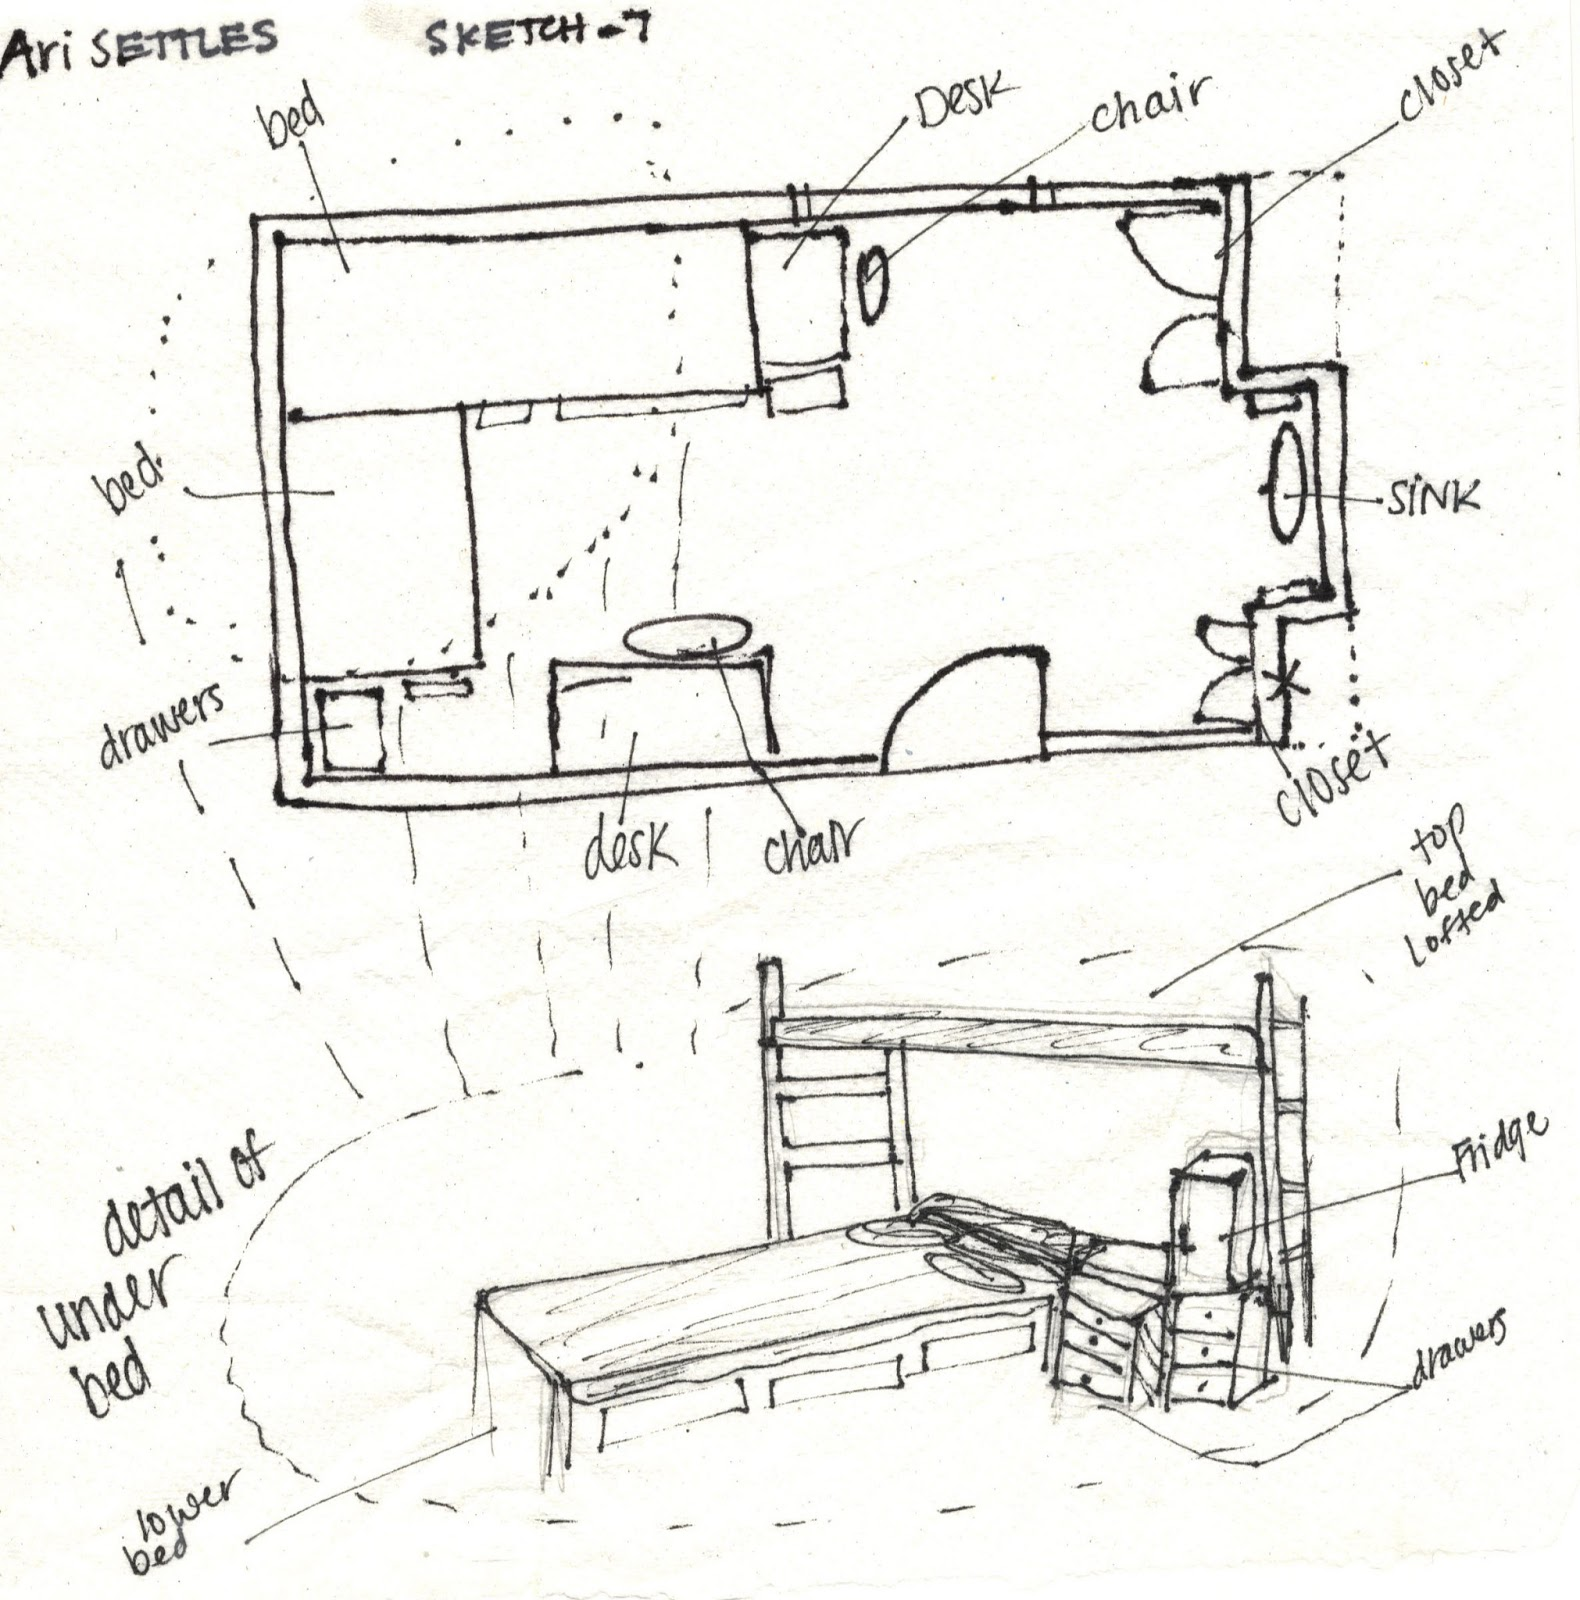 Ari settles 39 s interior design portfolio sketch journal for Floor plan sketch